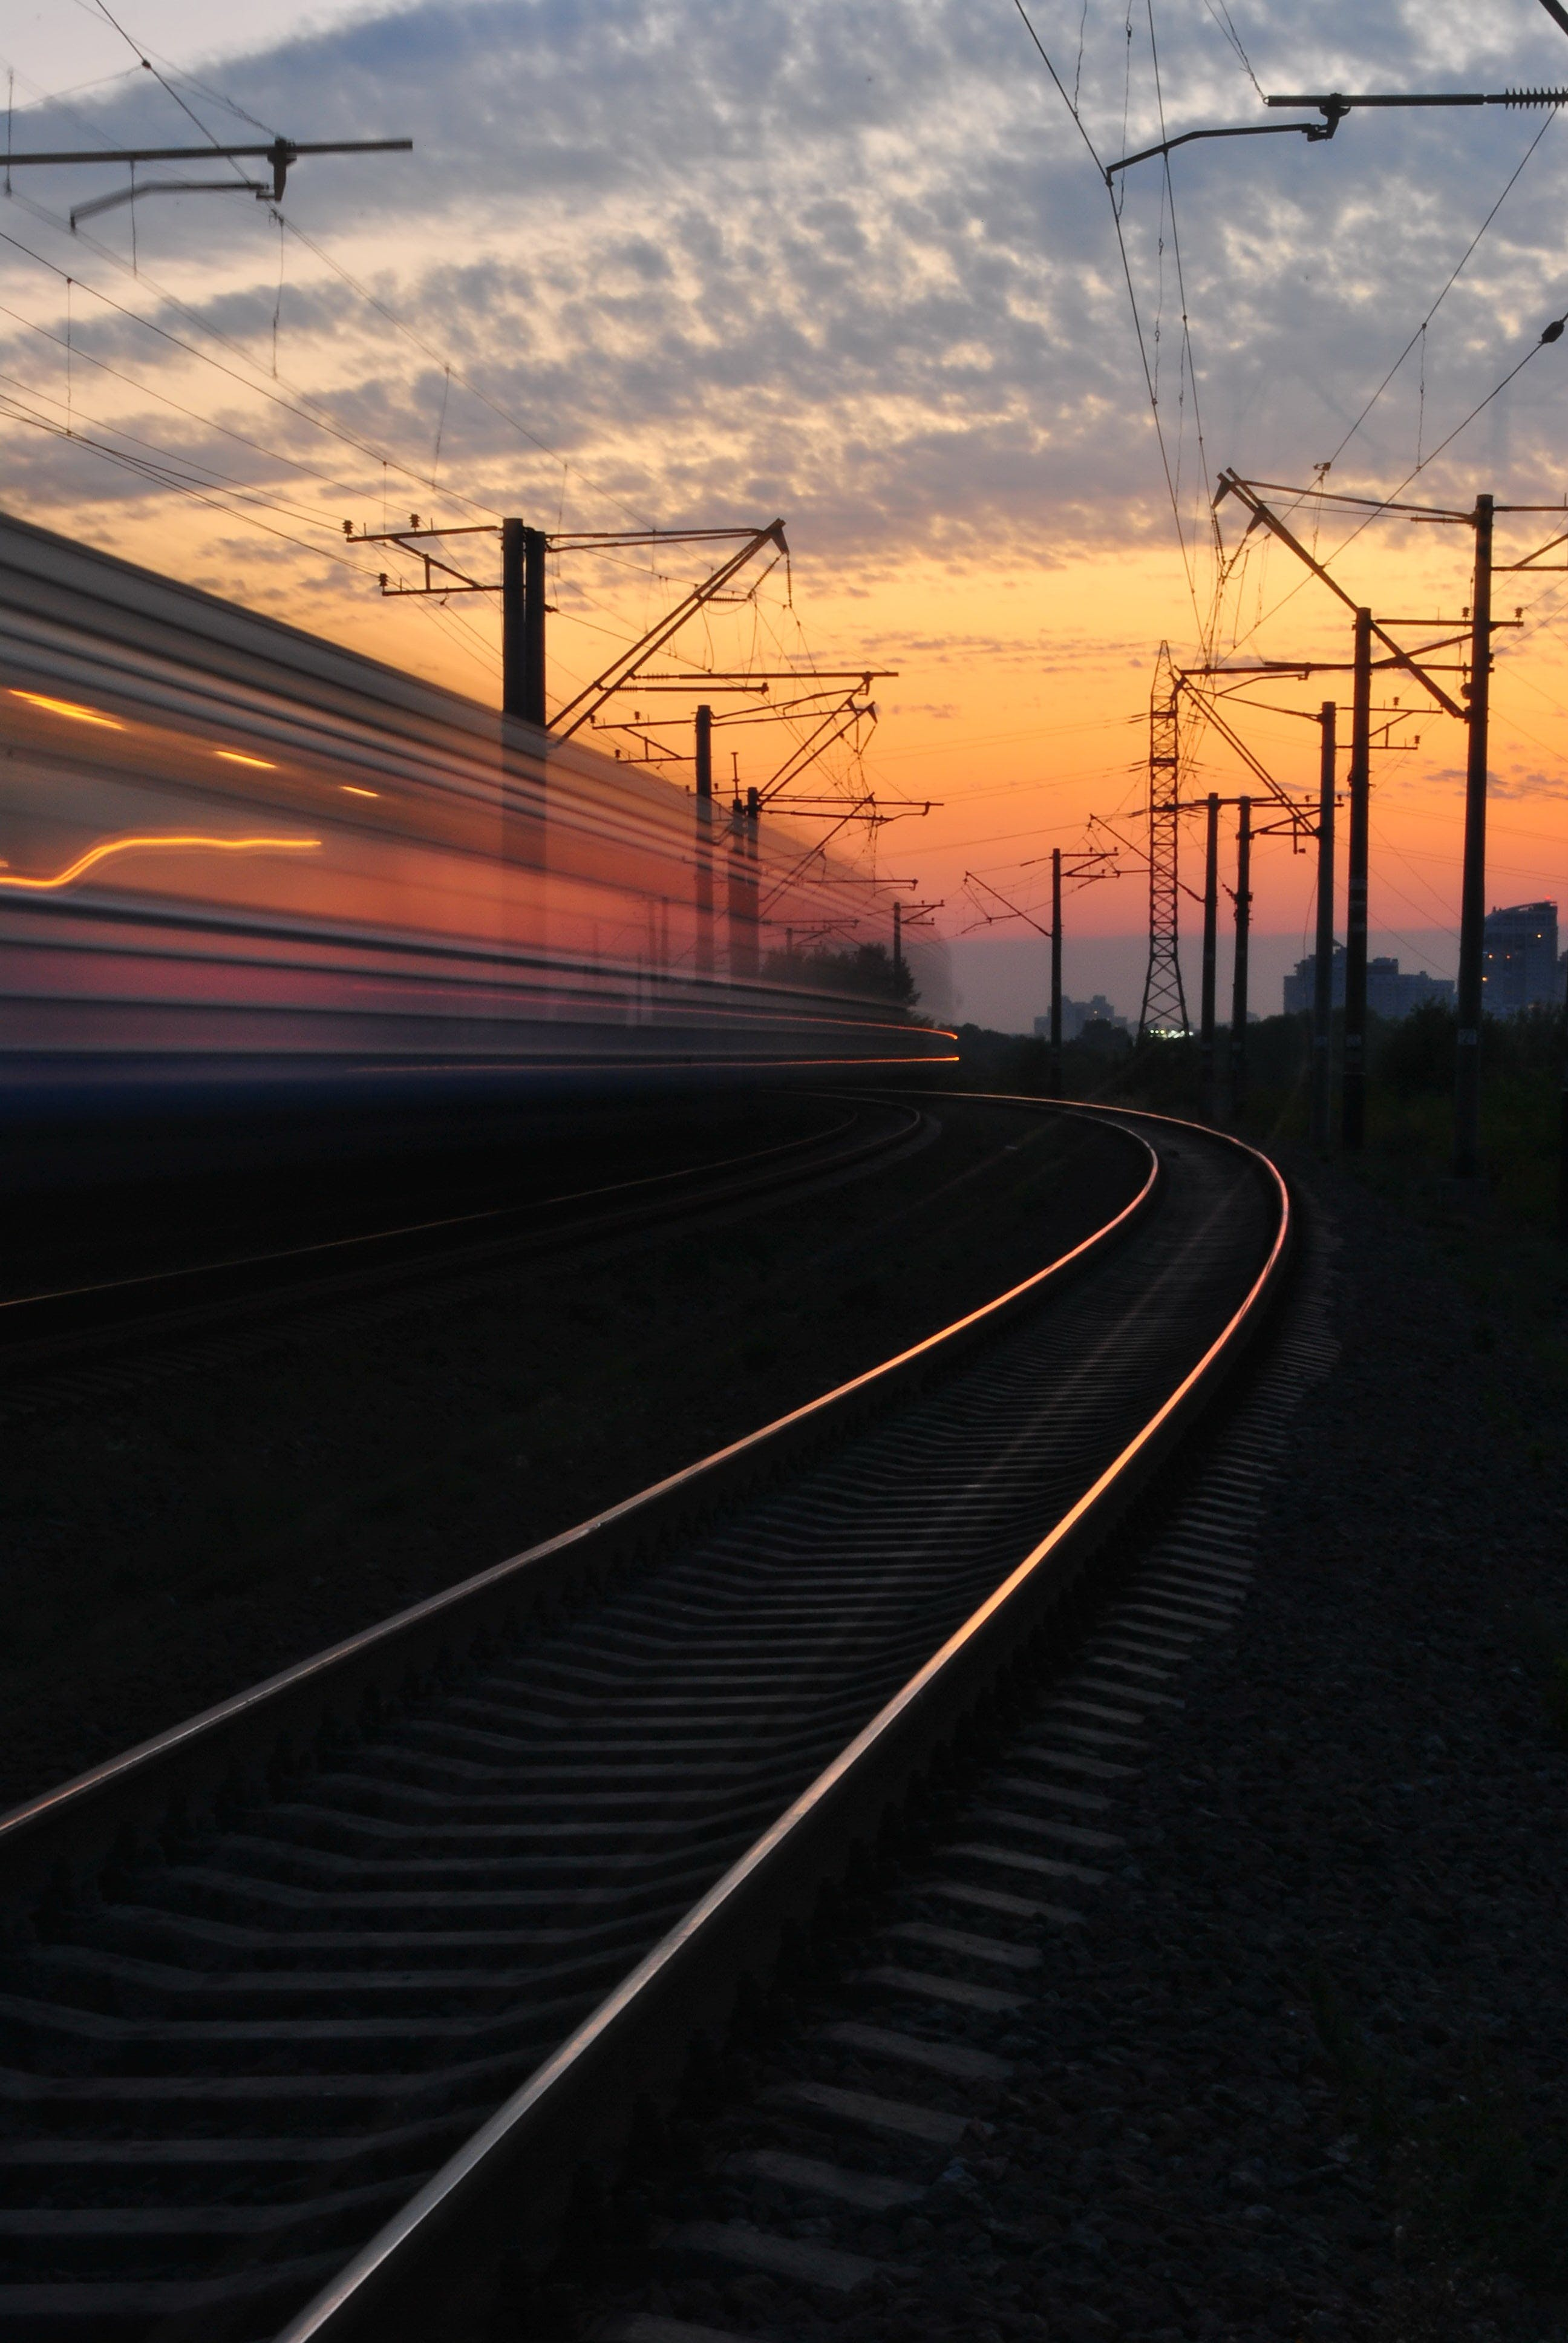 Rail Road Under Gray and Orange Cloudy Sky during Sunset